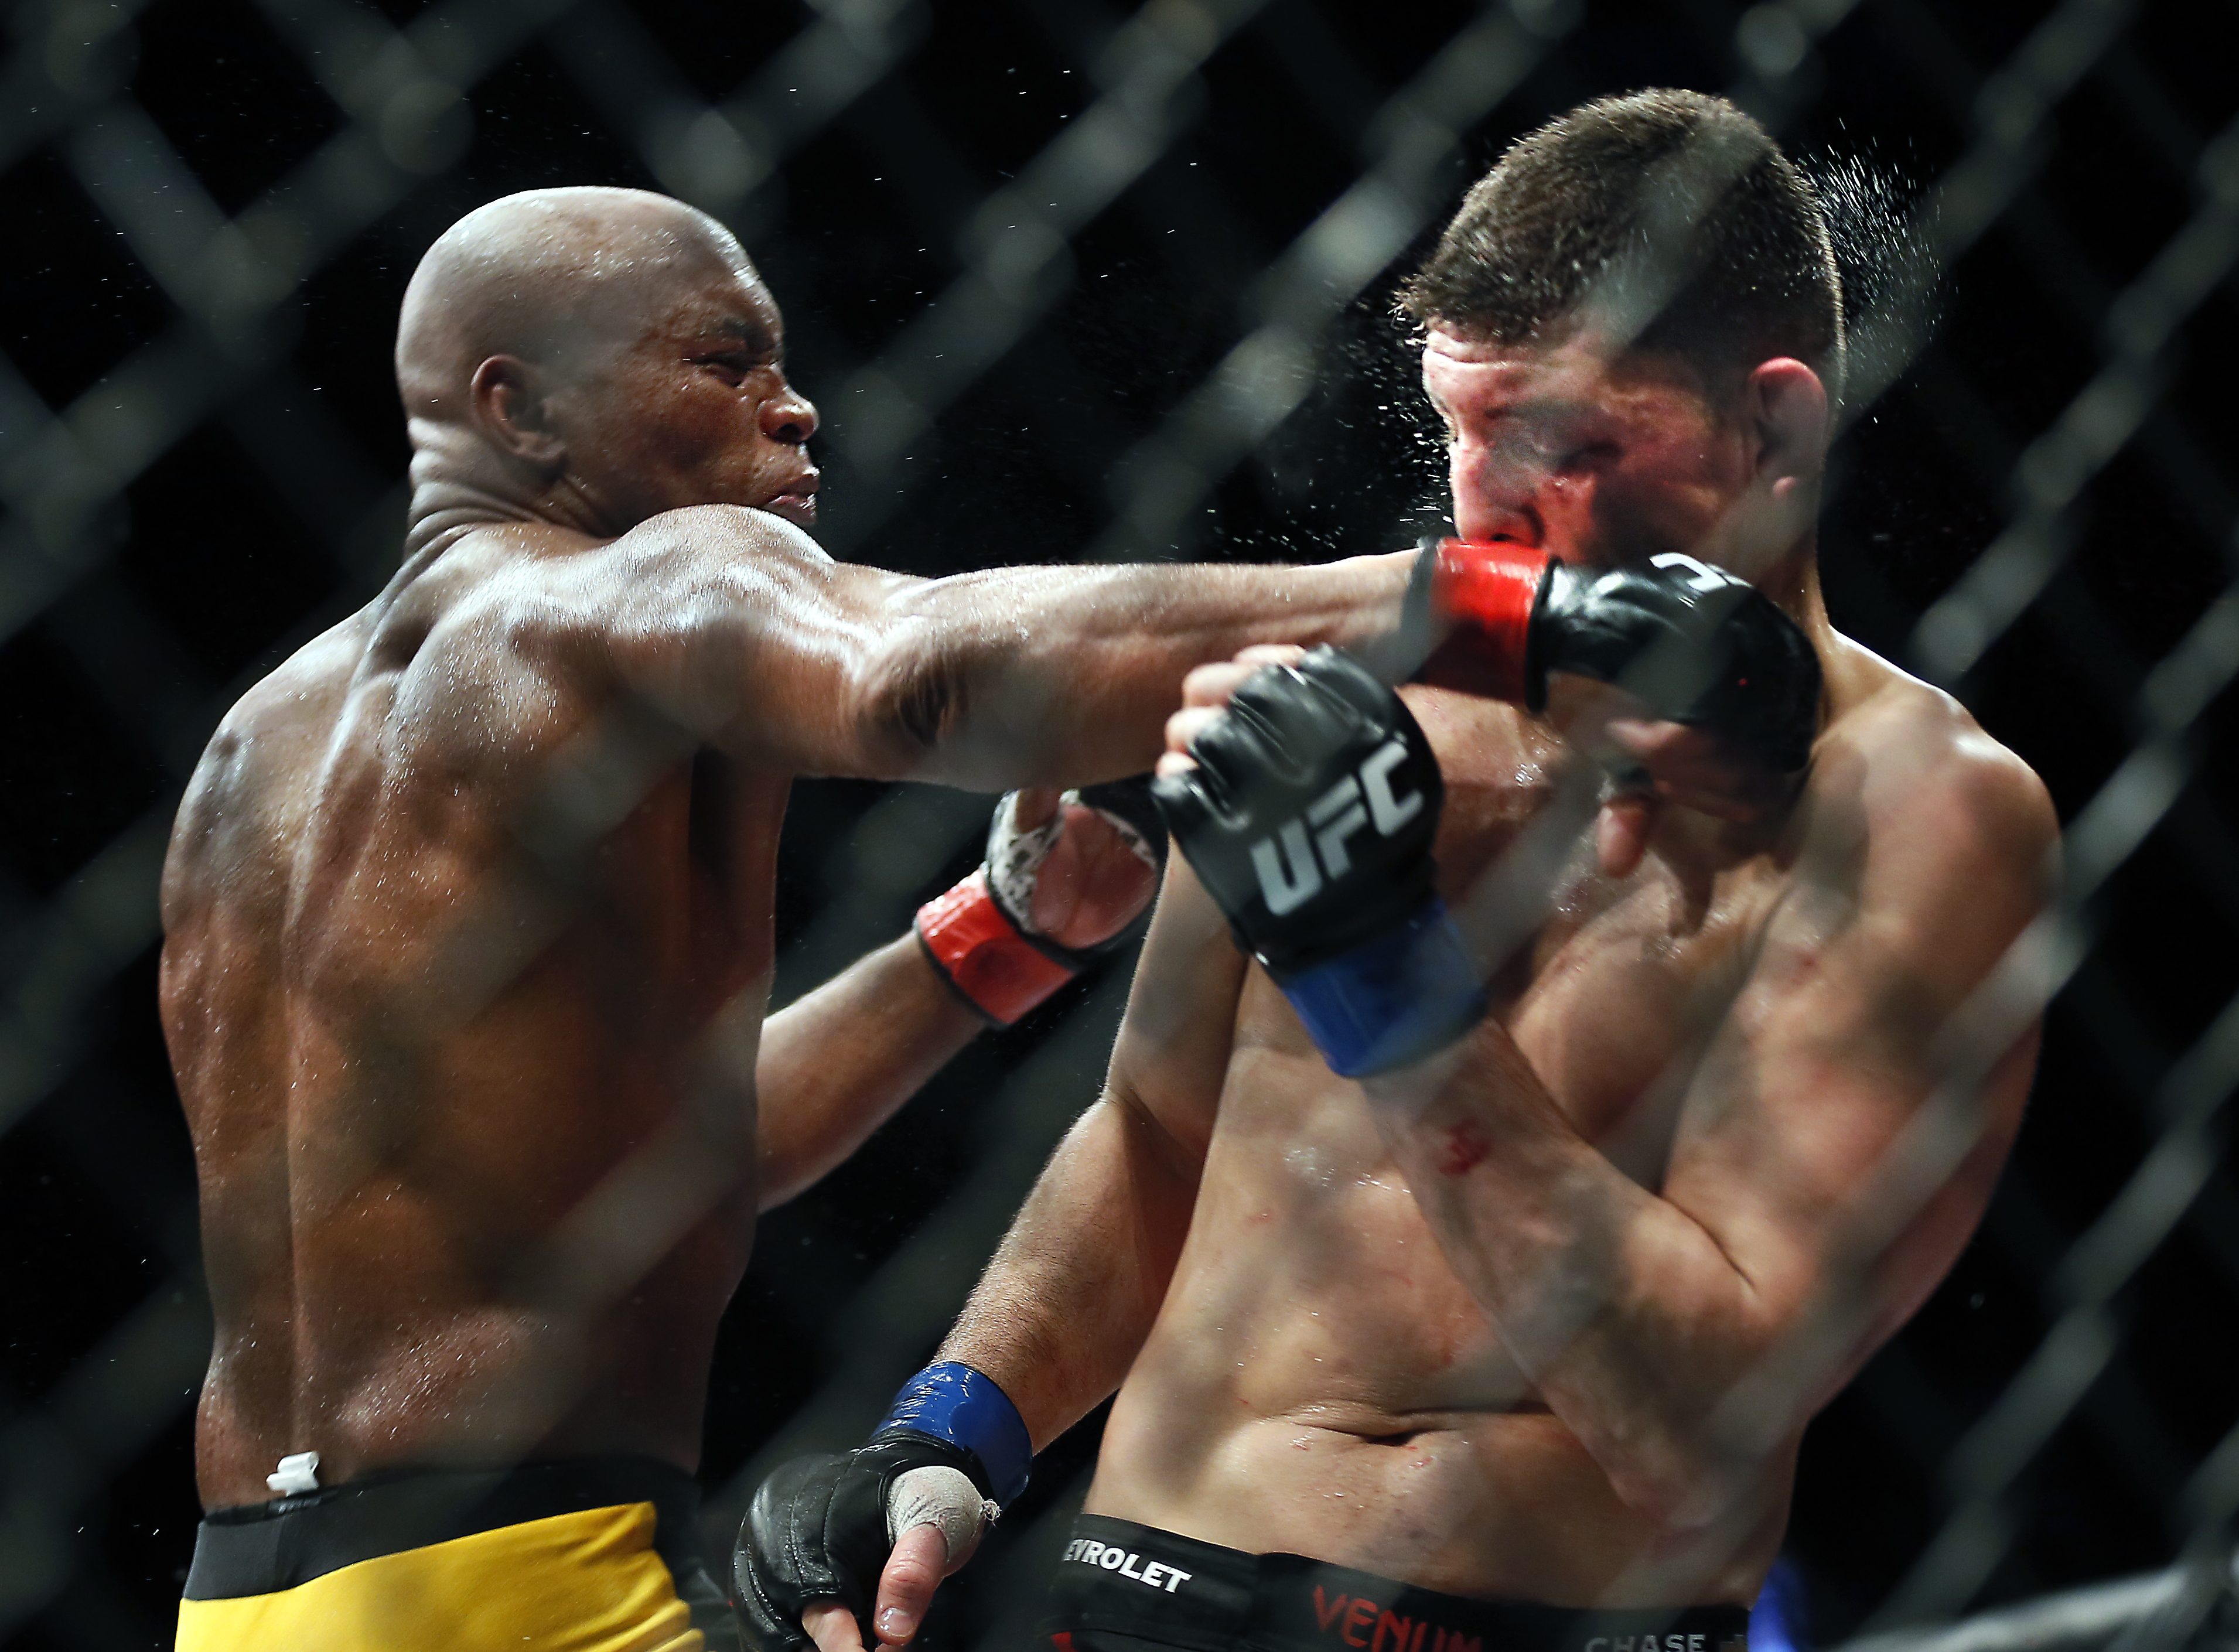 Middleweight Anderson Silva punches Nick Diaz during their fight at the MGM Grand Garden Arena in Las Vegas on Saturday, Jan. 31, 2015